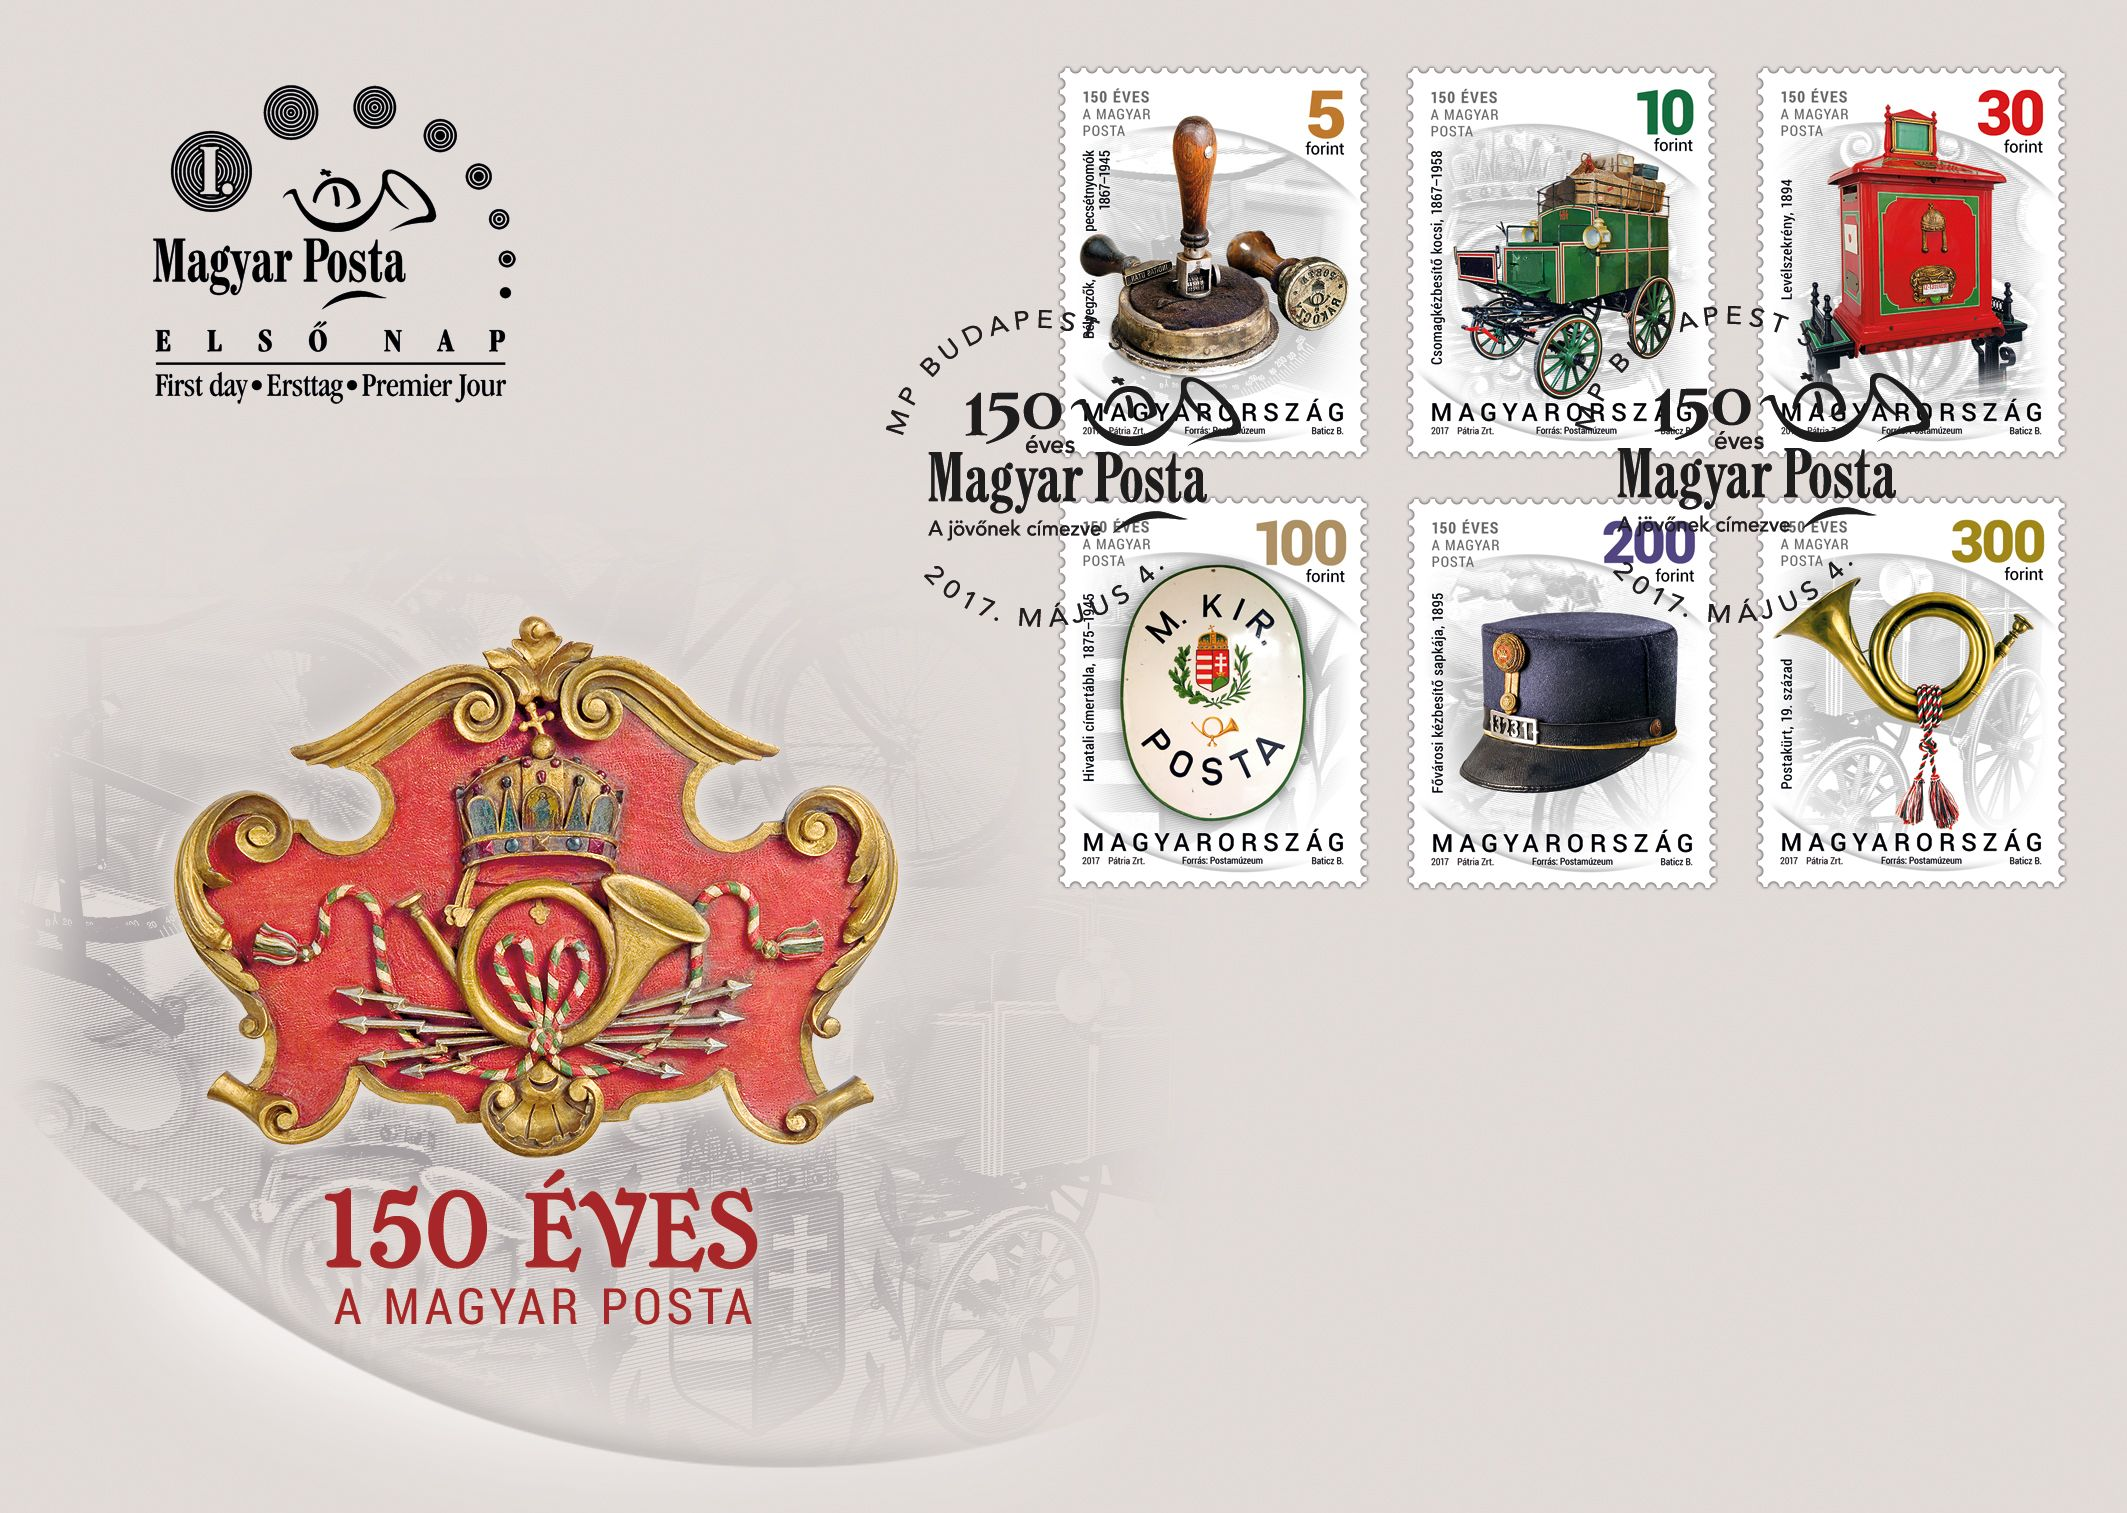 Postal history 2017 - definitive stamp series - FDC